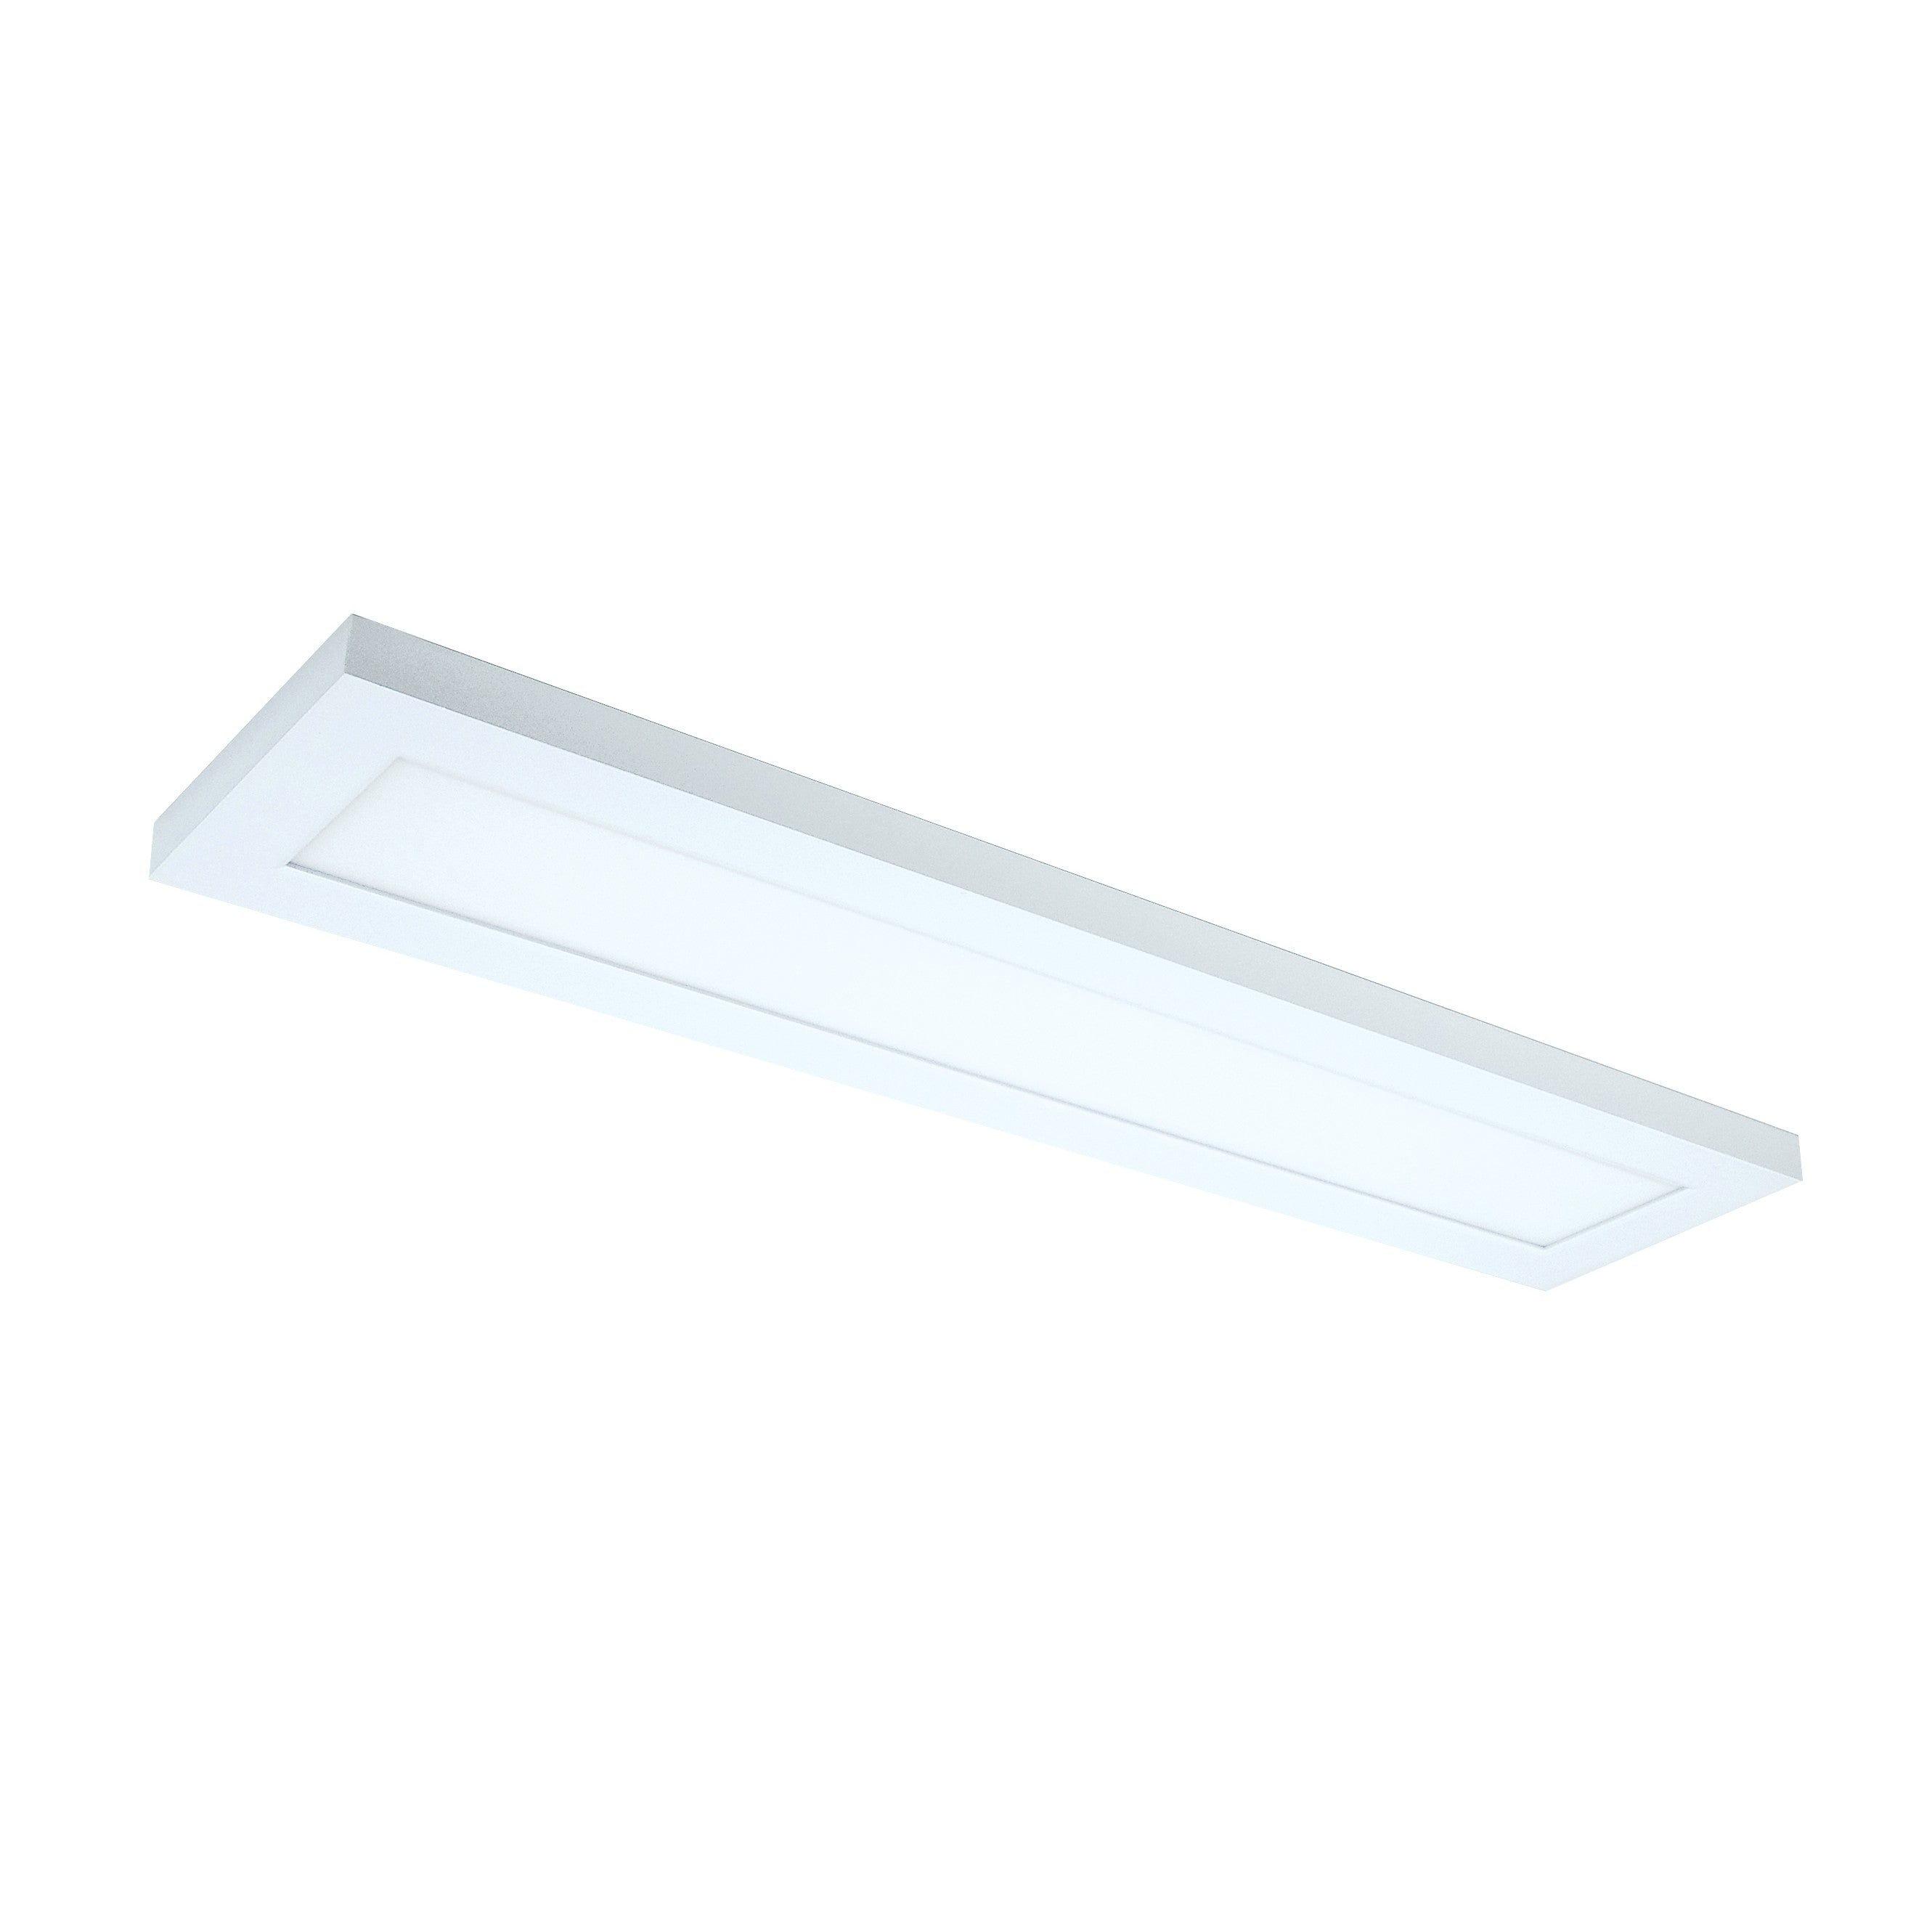 22W 5 inch x 2 foot Surface Mount LED Fixture 3000K White finish